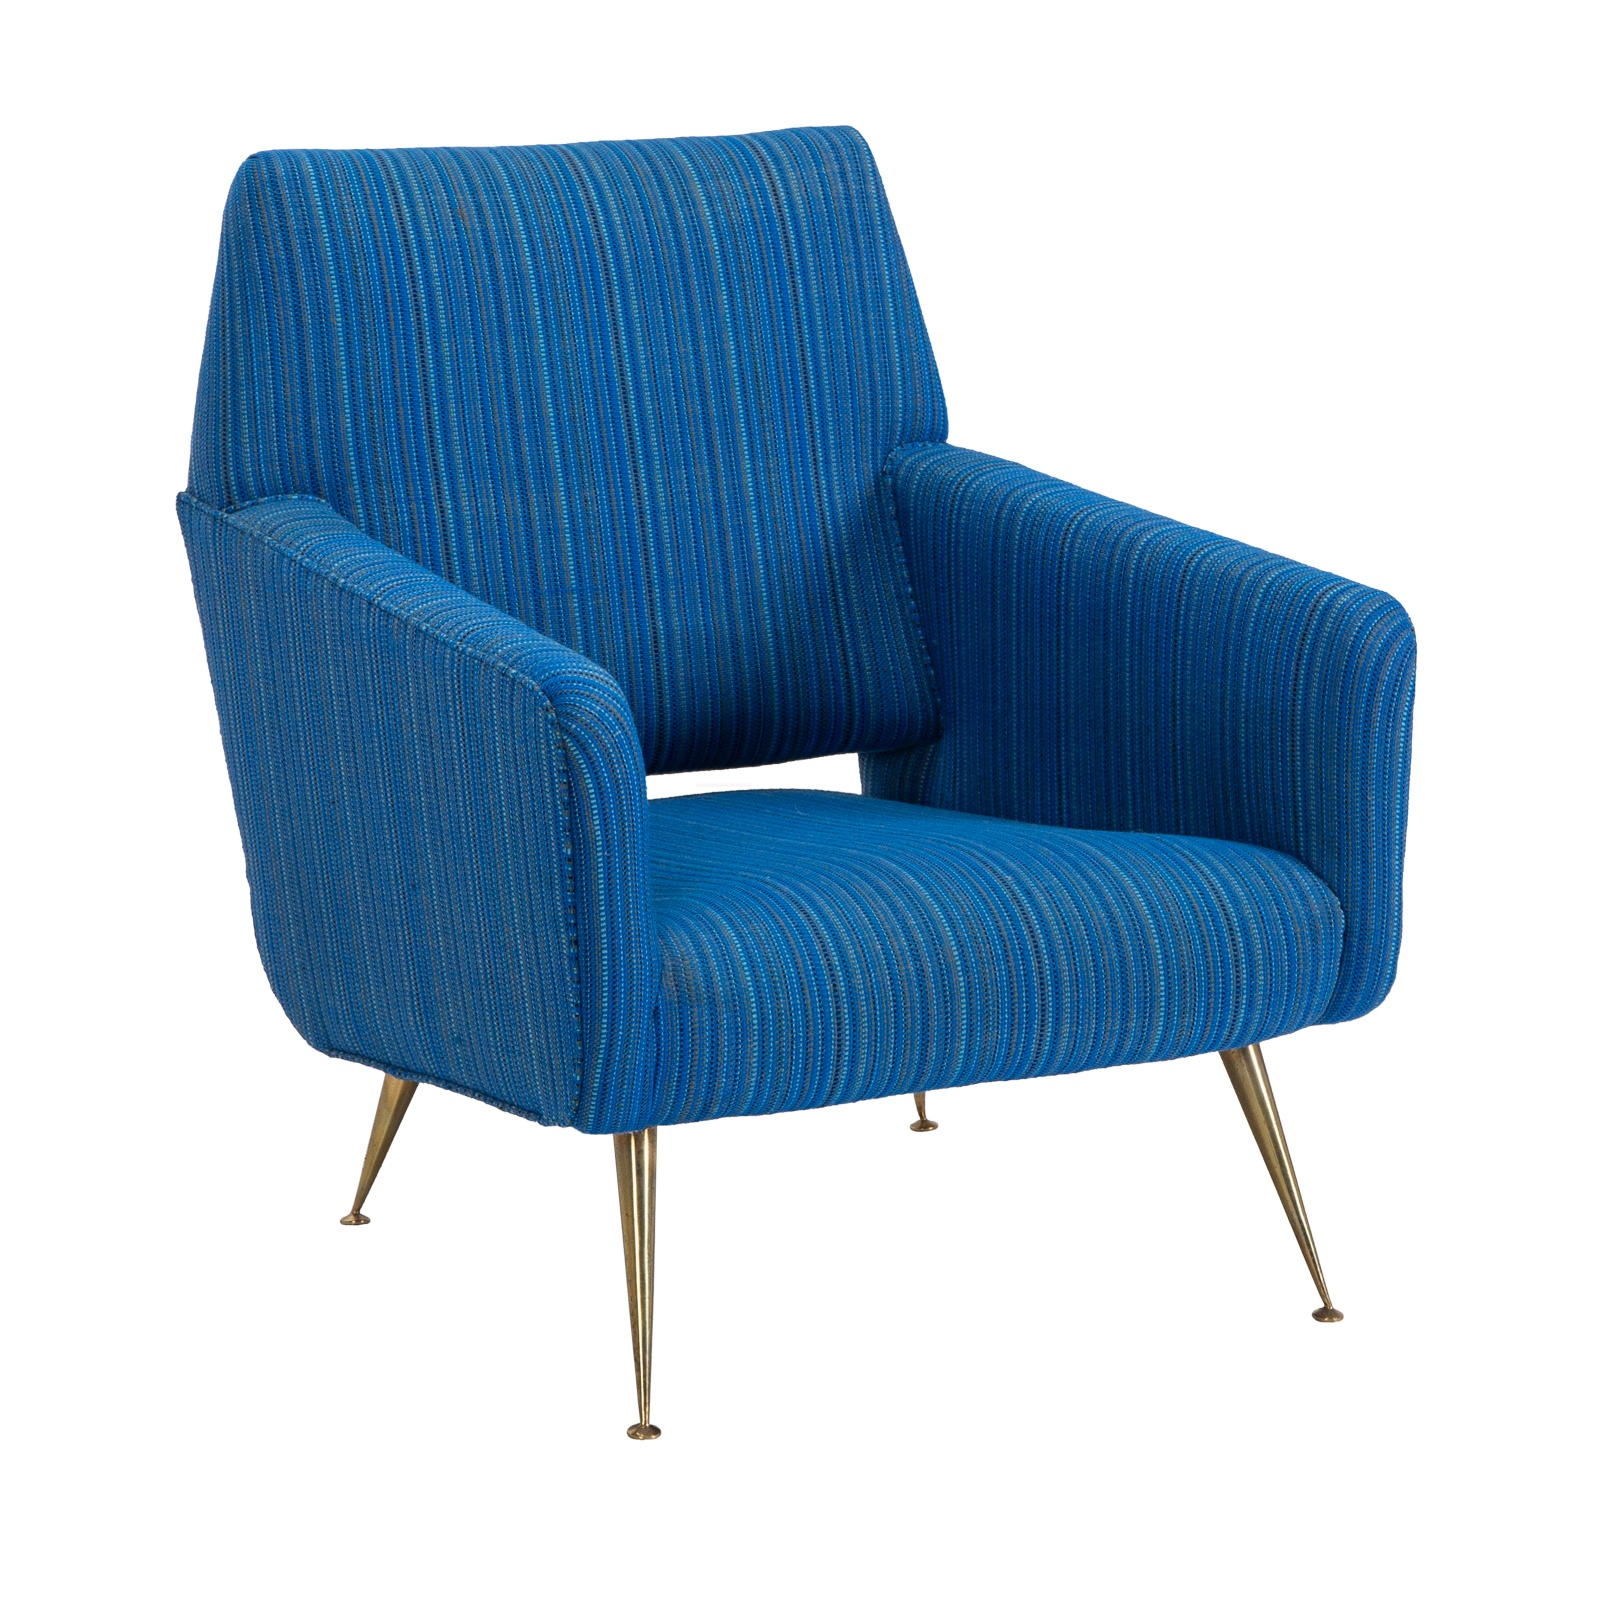 Fabulous Gio Ponti Style Lounge Chair His Event Trade Show Bralicious Painted Fabric Chair Ideas Braliciousco